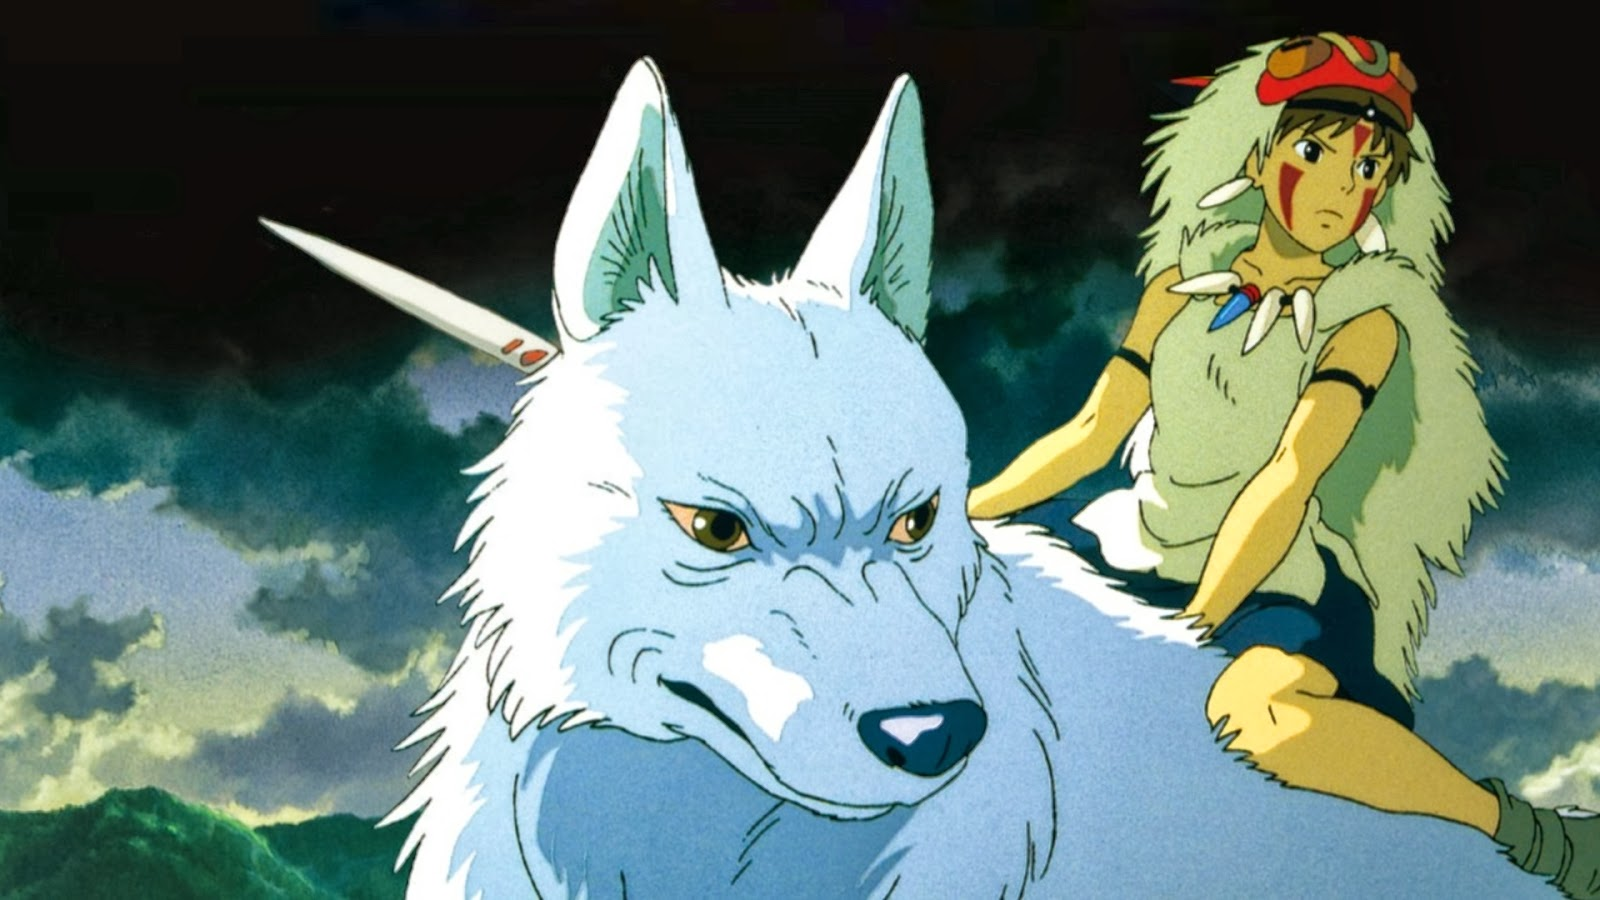 49 Princess Mononoke Wallpaper Hd On Wallpapersafari